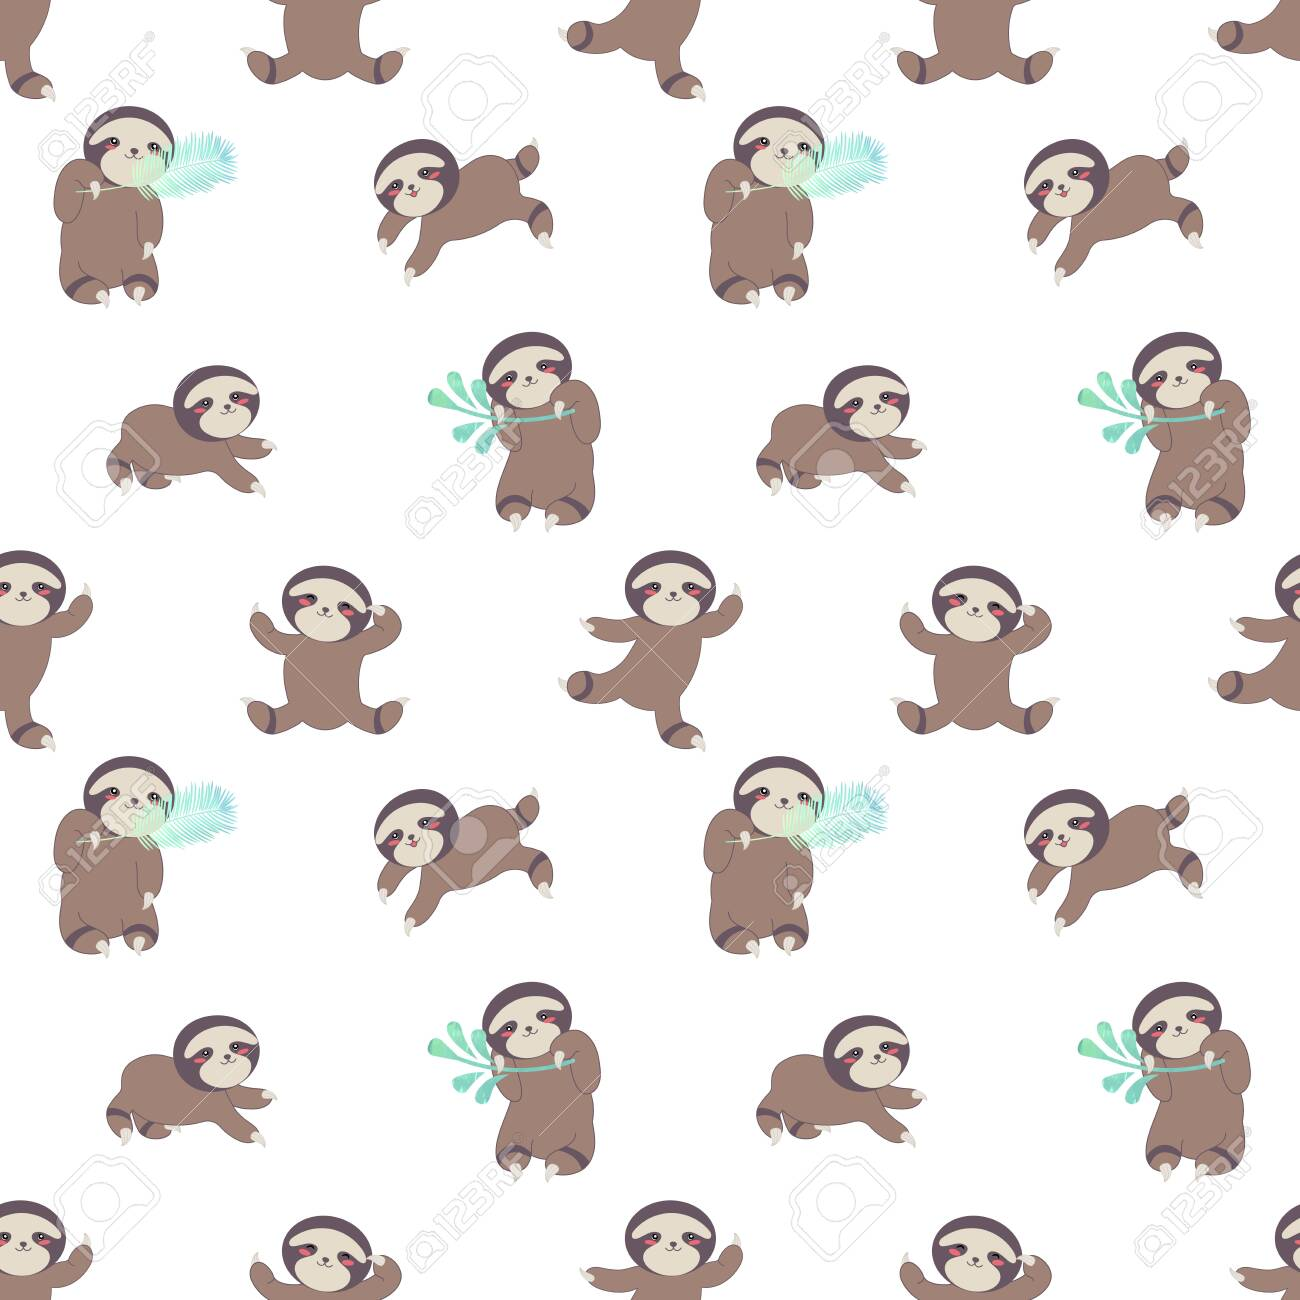 Cute Baby Sloths Seamless Pattern In A Cartoon Style On A White Royalty Free Cliparts Vectors And Stock Illustration Image 137241455